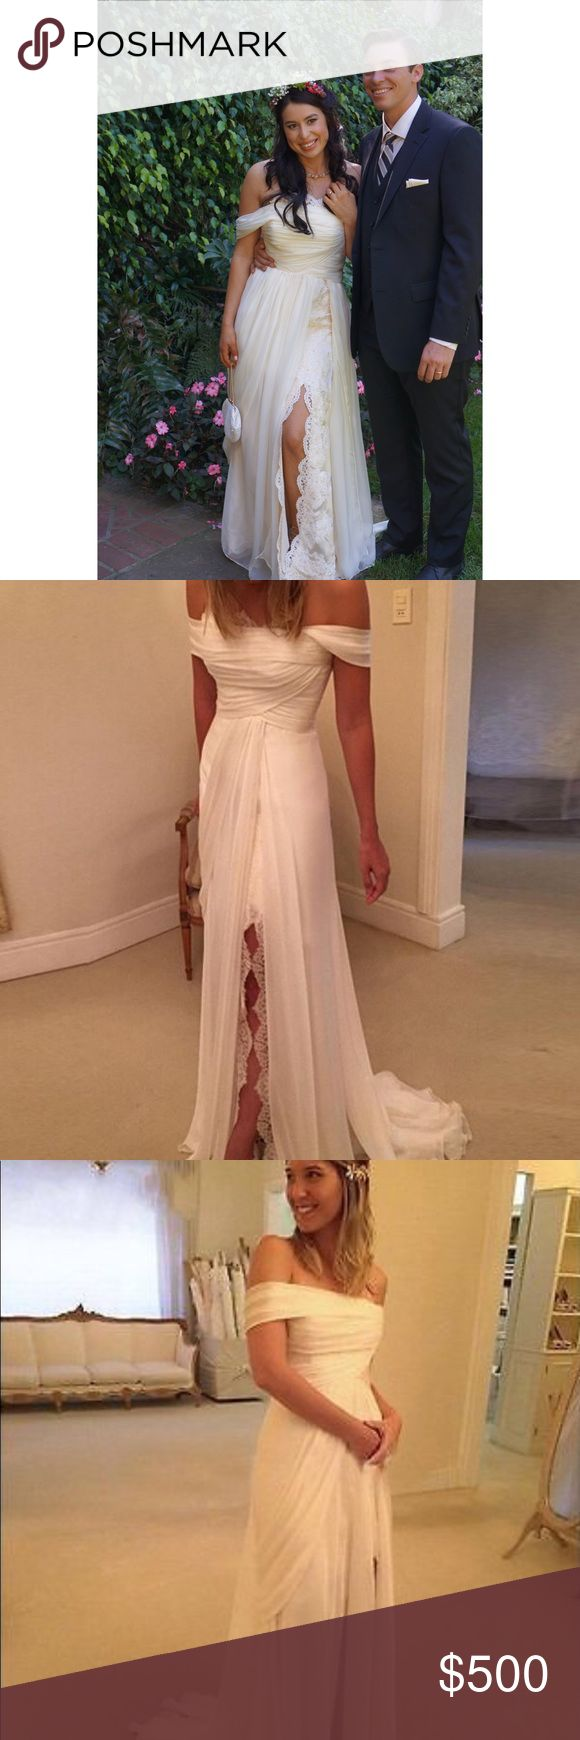 Gorgeous Wedding Dress!! Size 4. Silhouette A-lime. Material is Chiffon, Lace, and Satin. Dresses Wedding